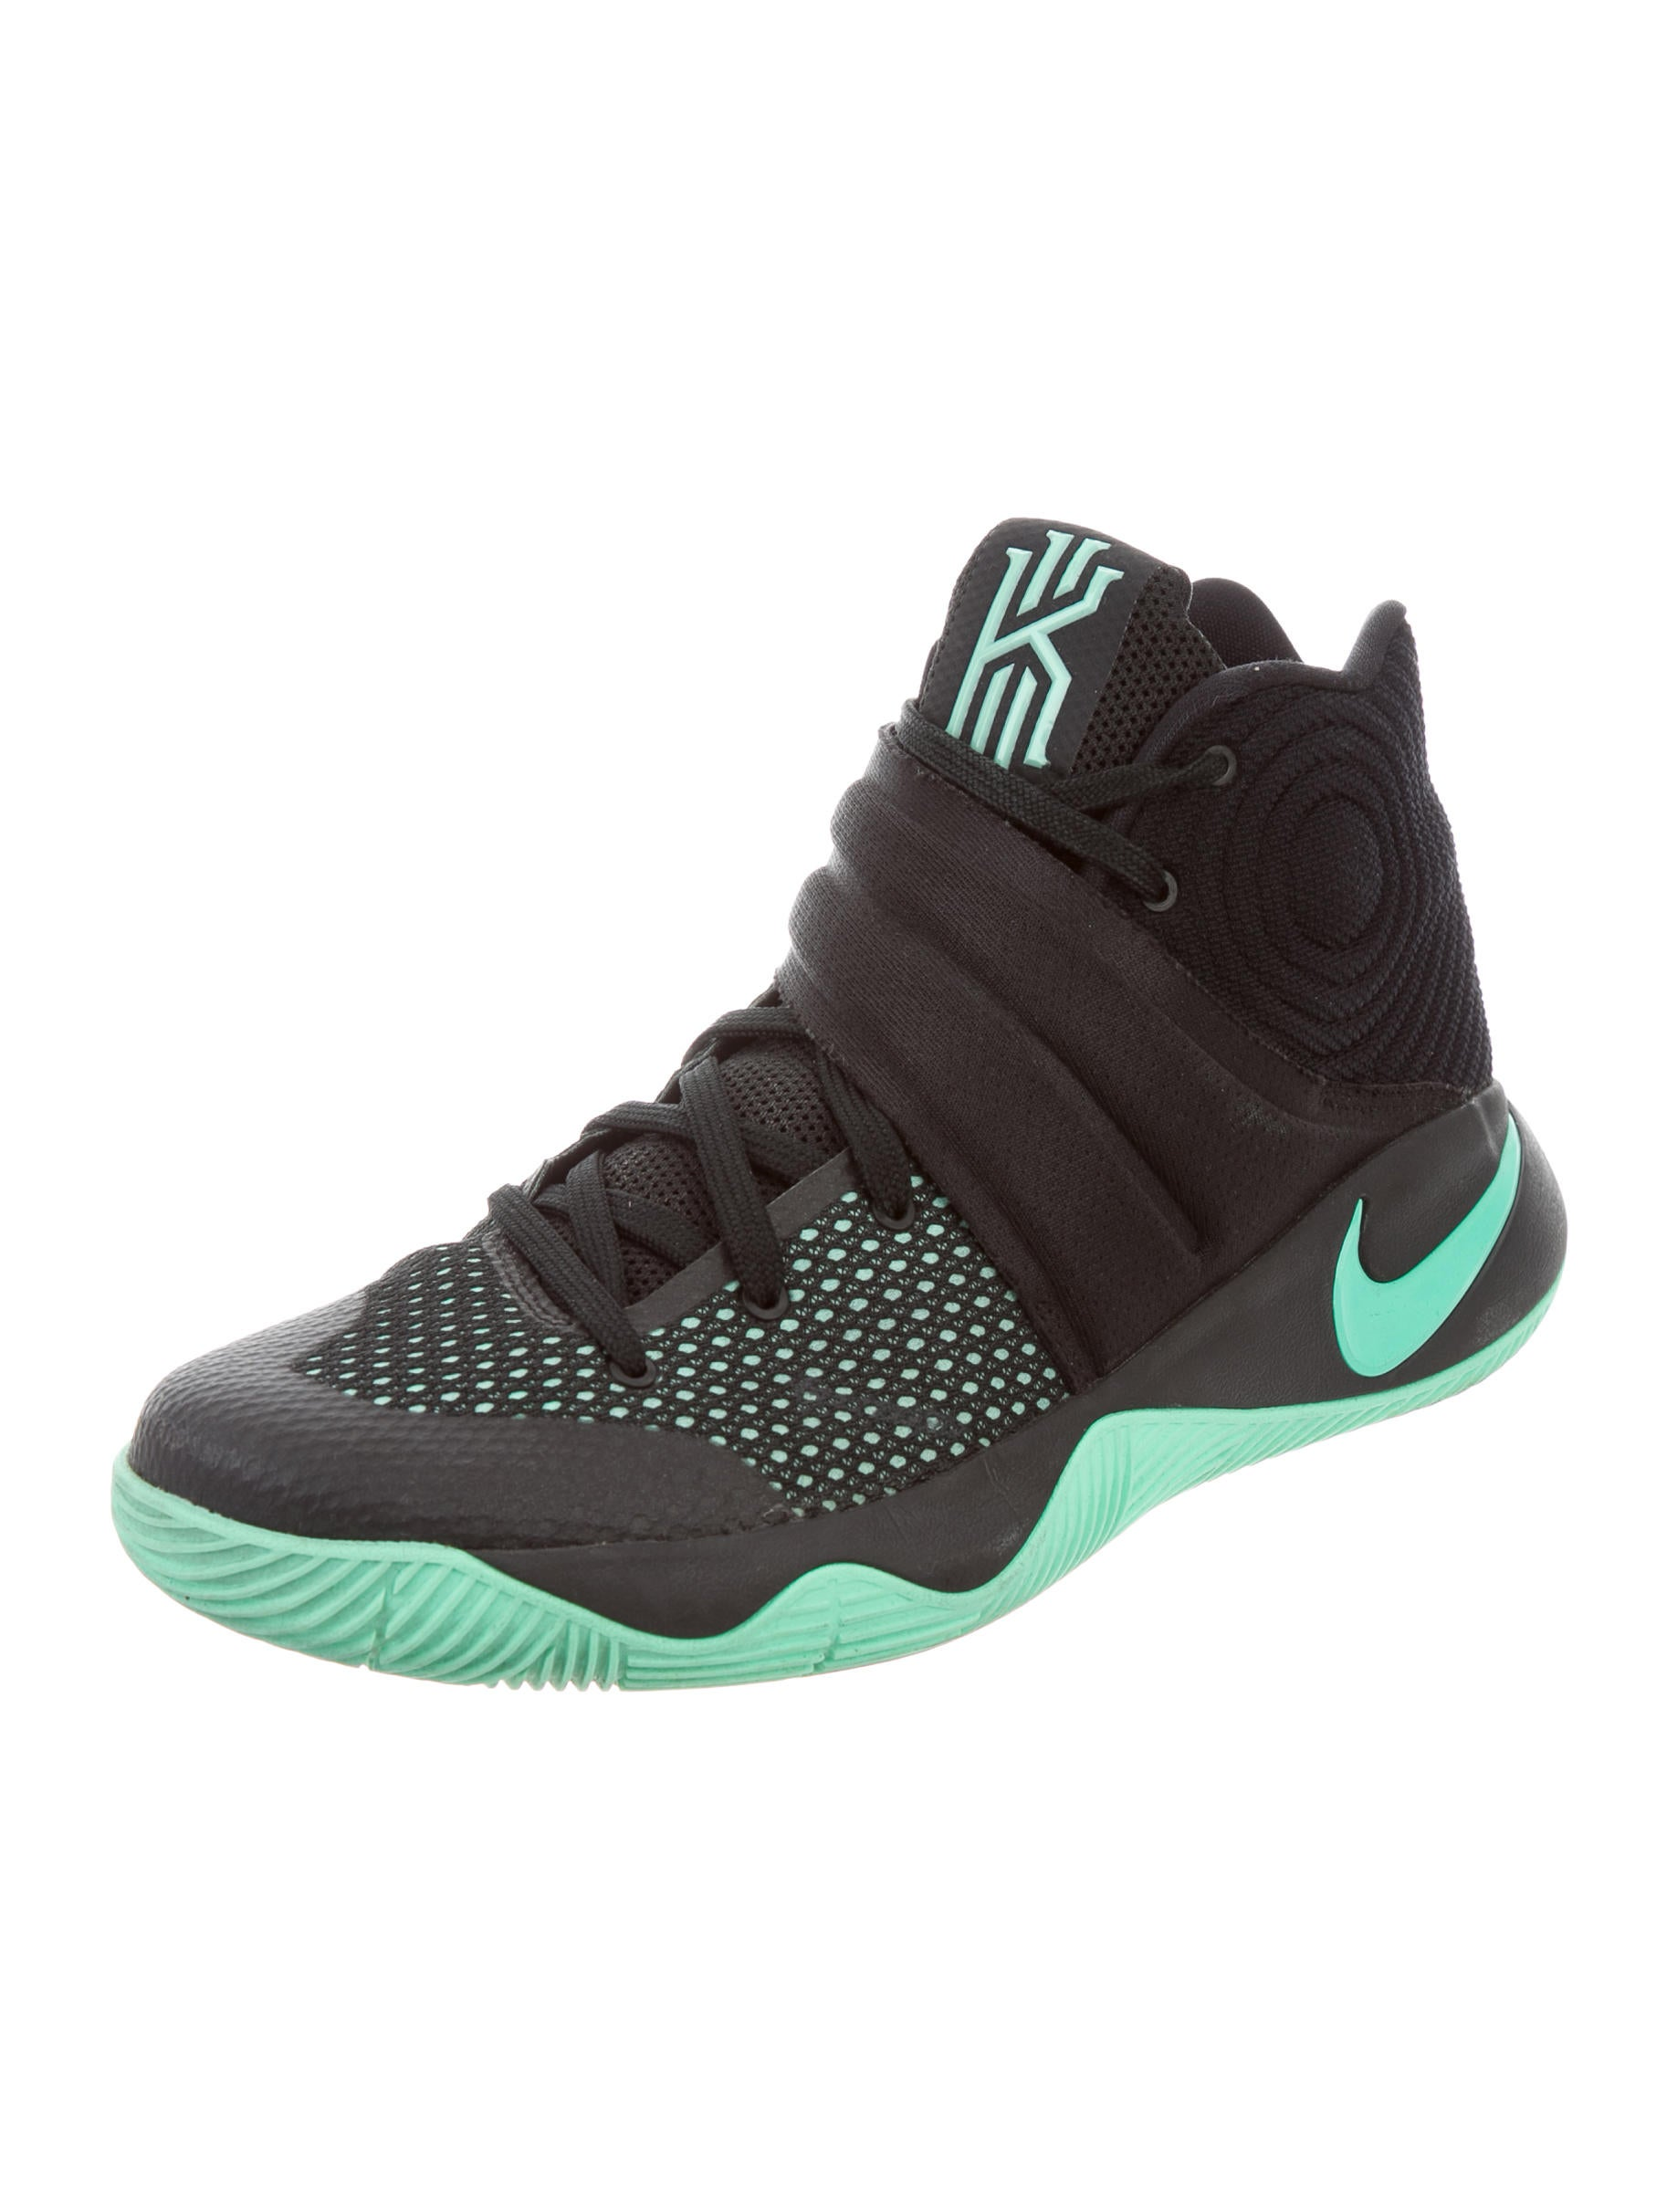 Kyrie Irving  Shoes  Men S